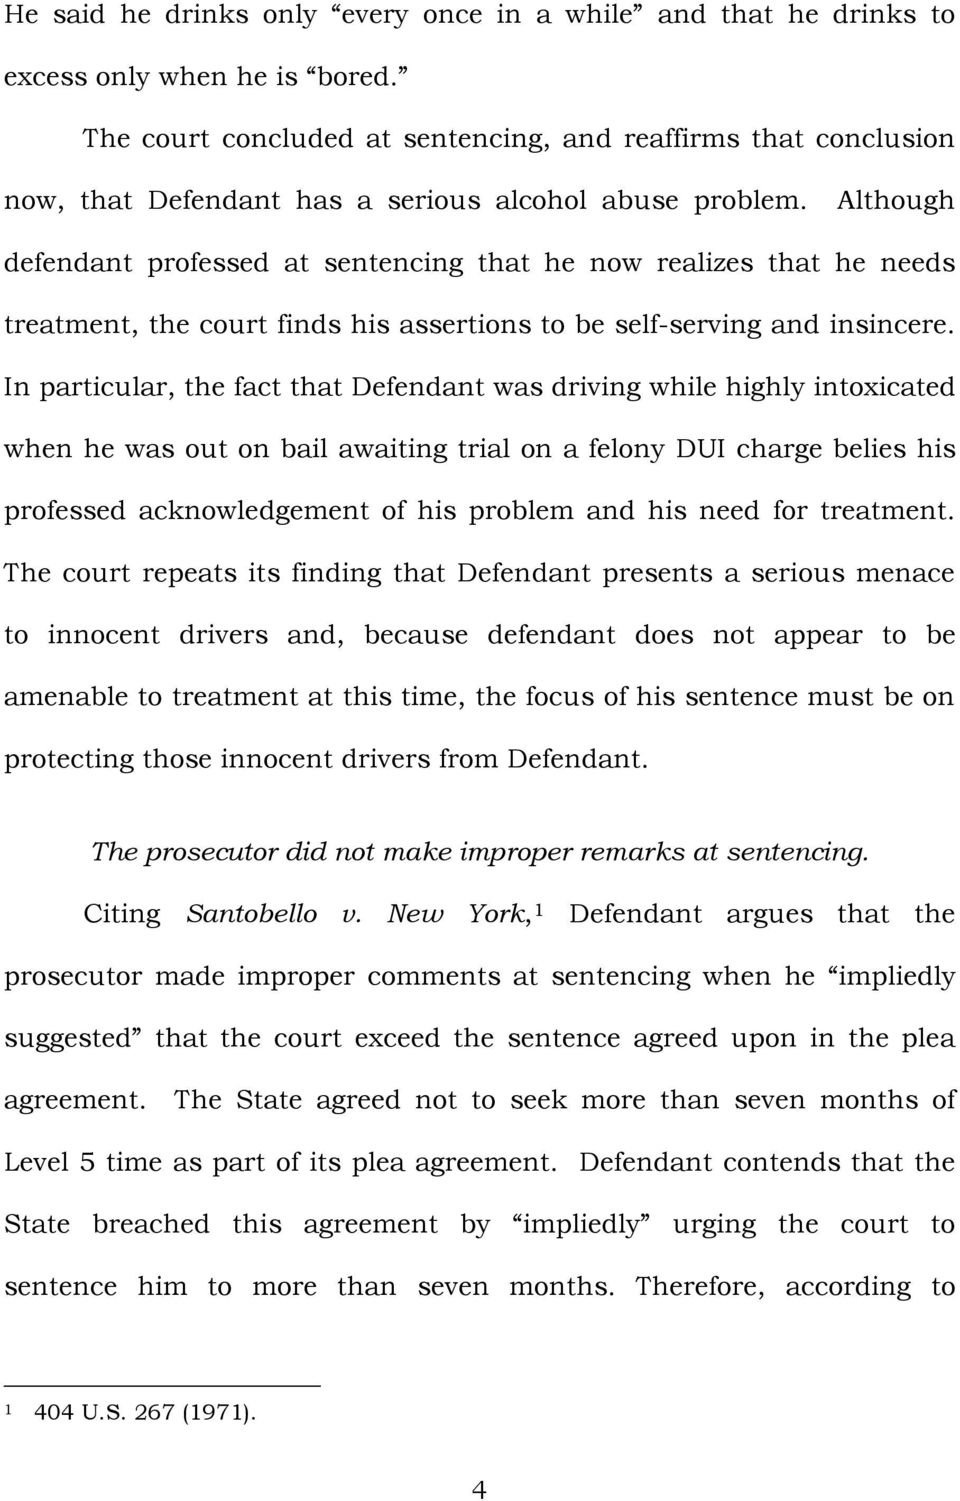 Although defendant professed at sentencing that he now realizes that he needs treatment, the court finds his assertions to be self-serving and insincere.